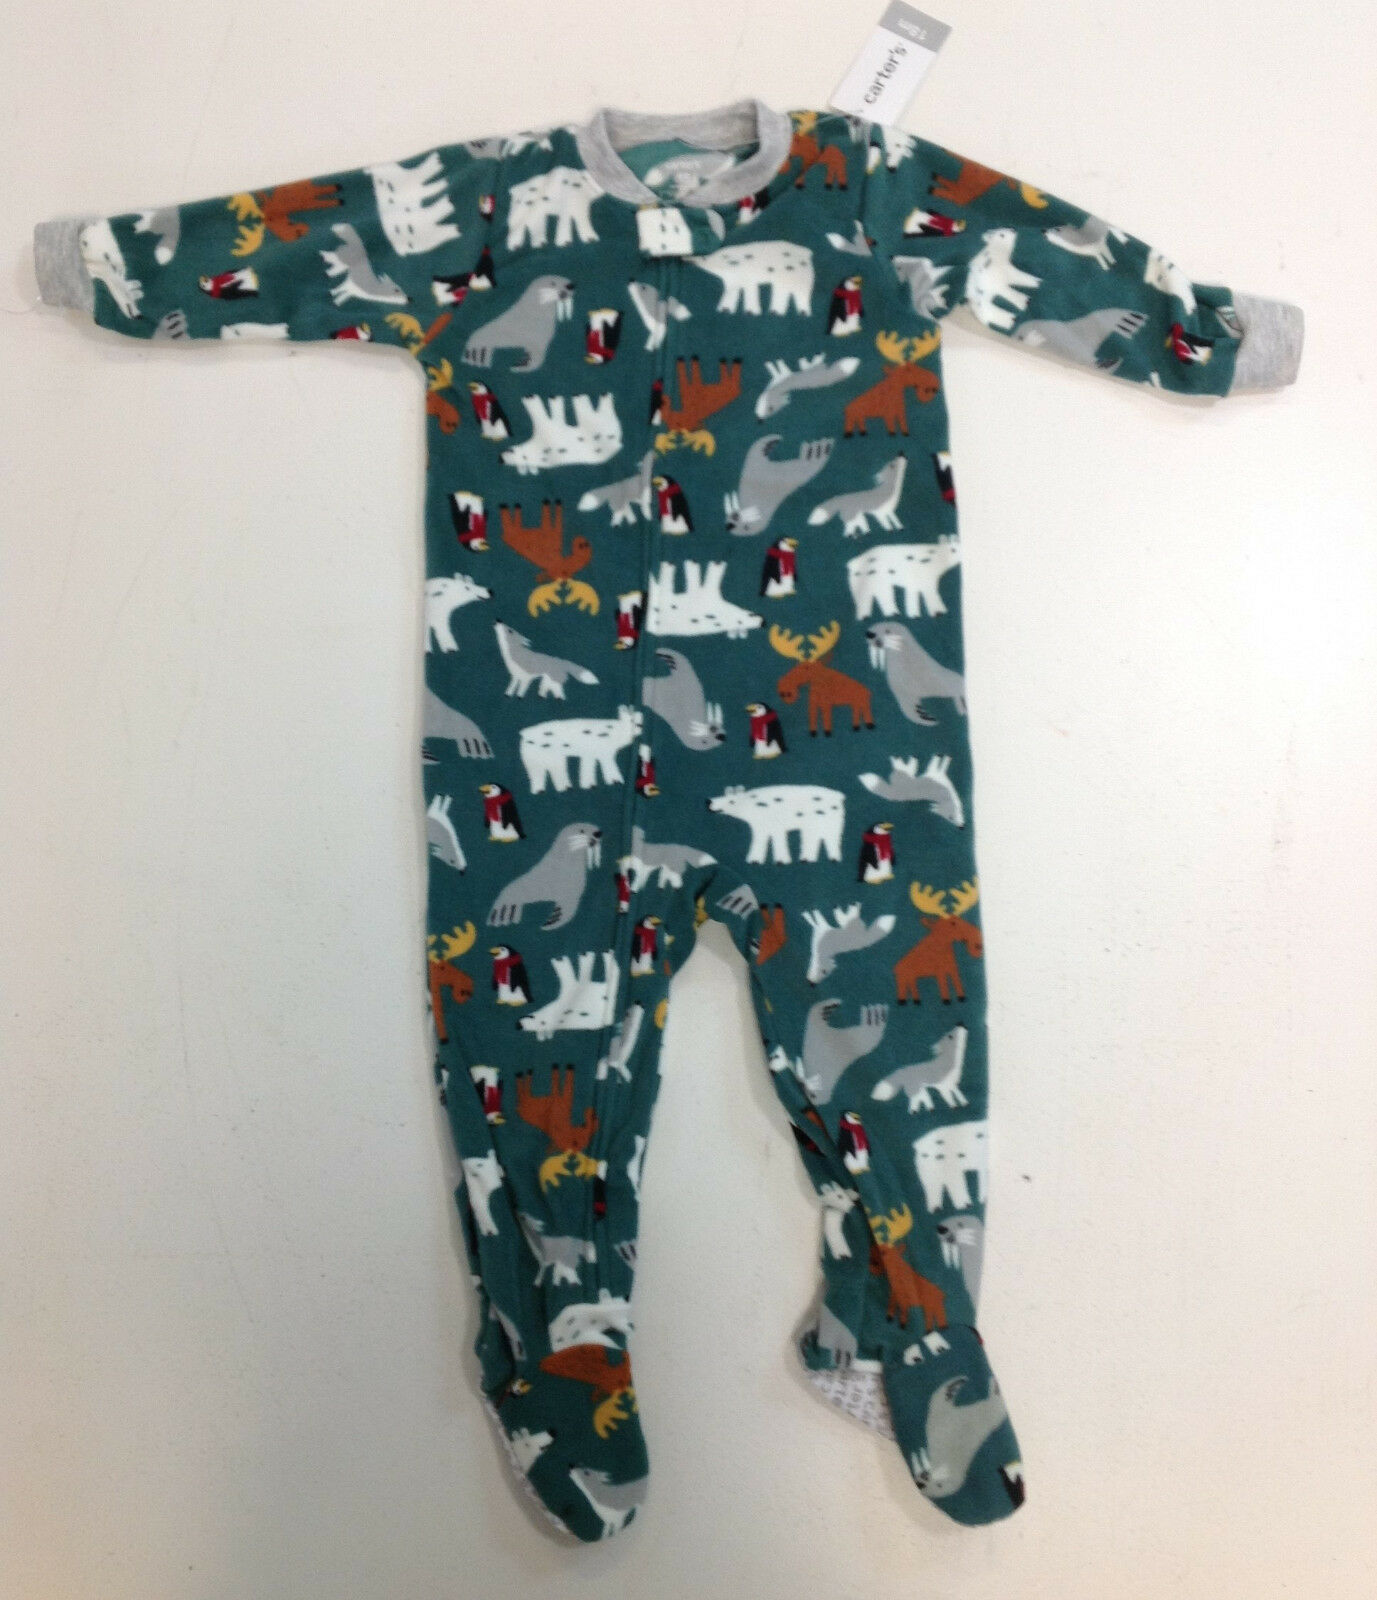 135e30879 Carter's Boys' One-Piece Footed Pajamas, and 14 similar items. S l1600